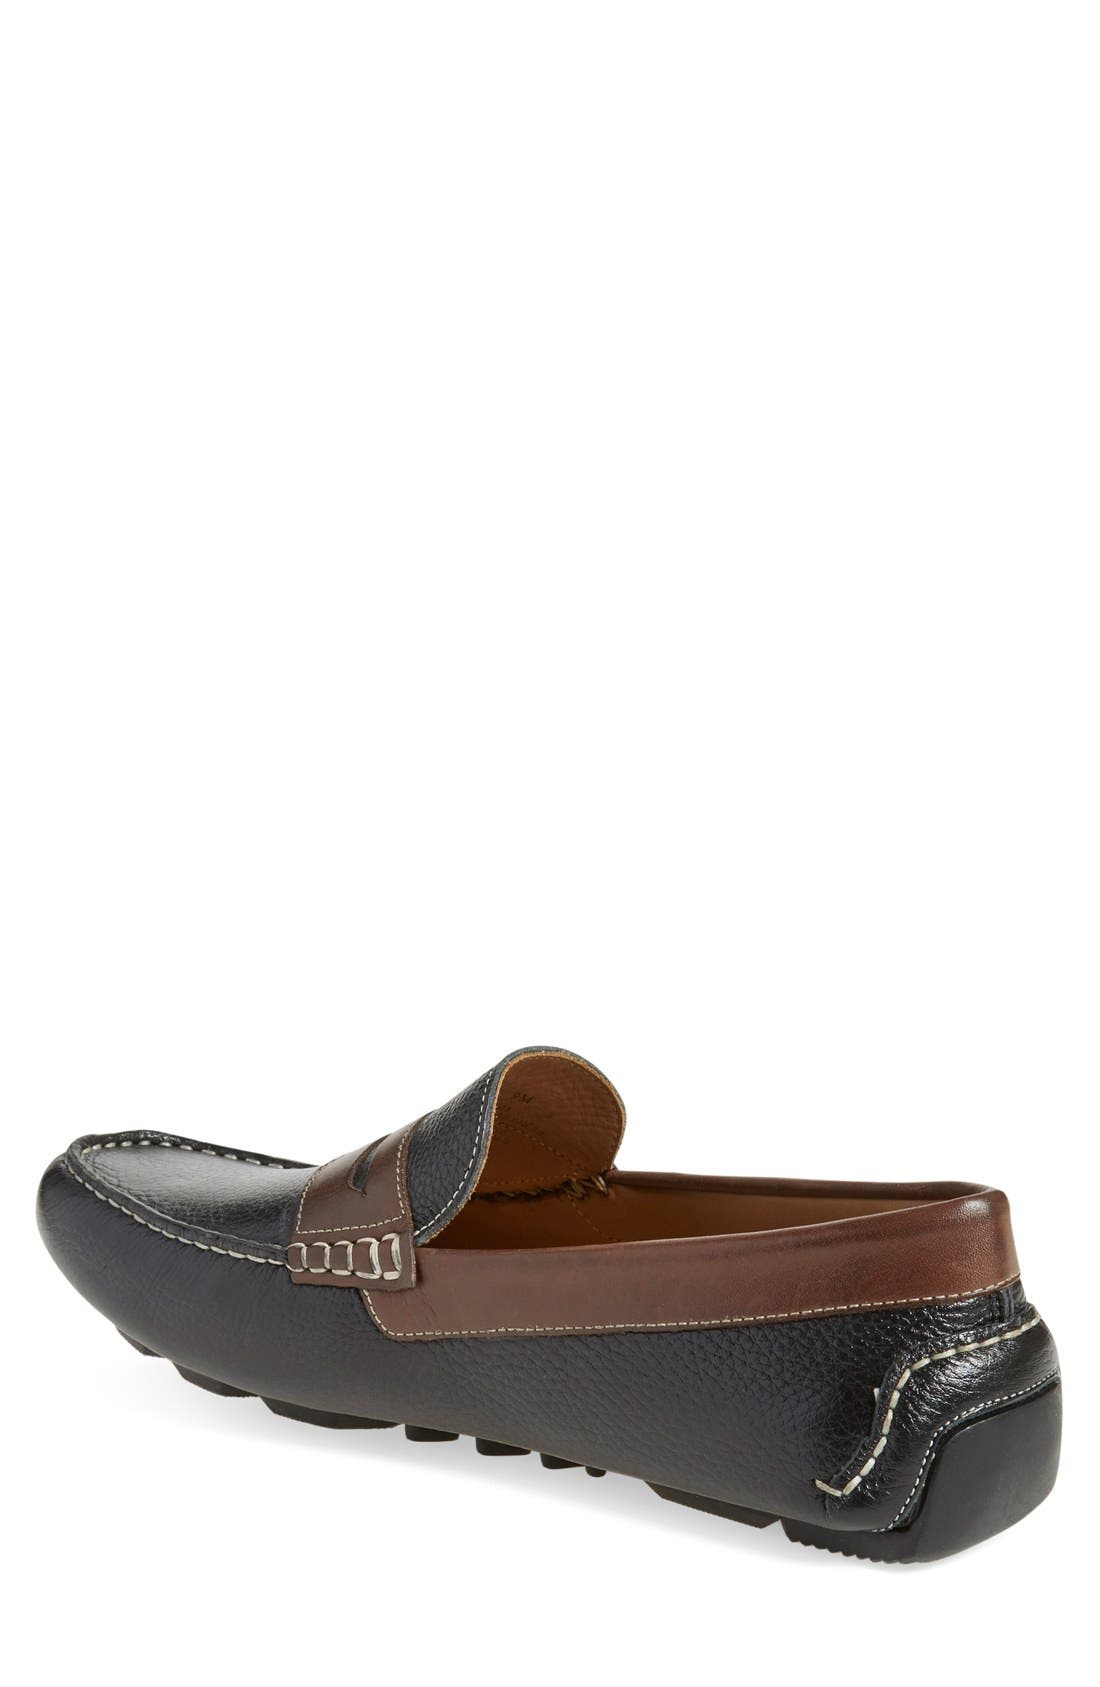 2393d040e29 Men's 1901 Shoes | Nordstrom